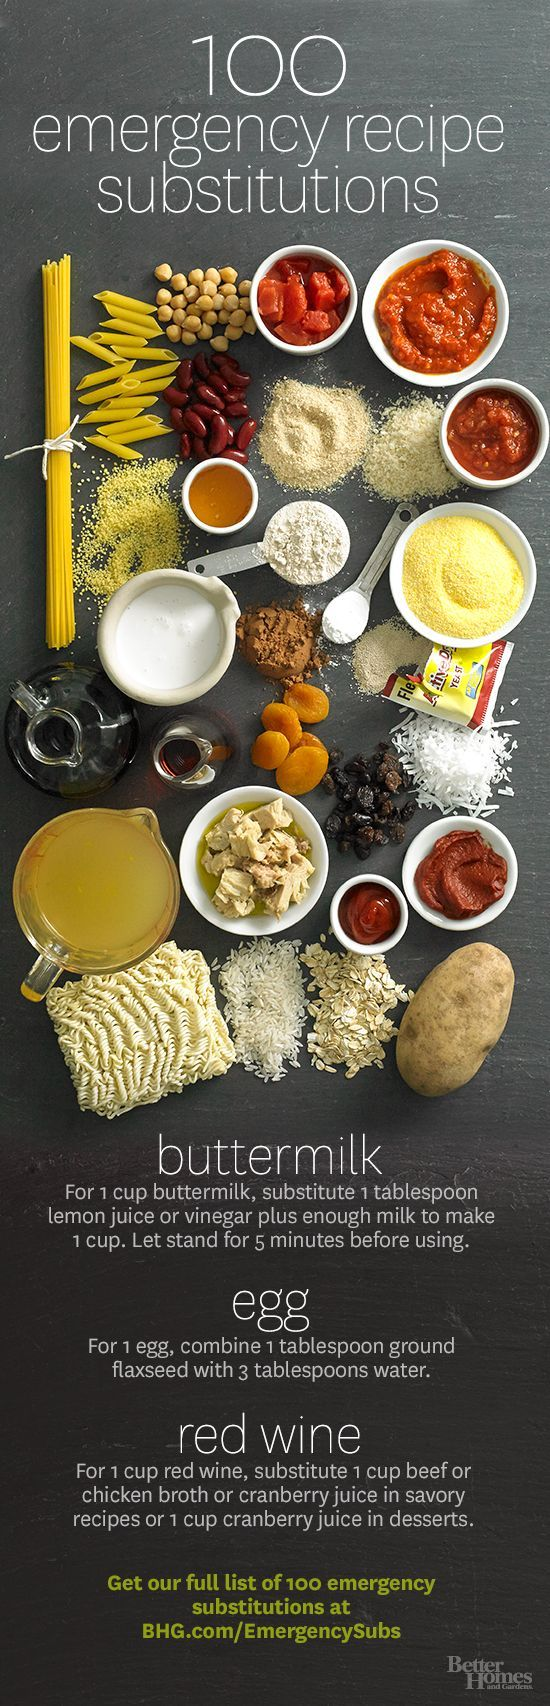 Short an ingredient for your grand holiday meal? Check out our list of ingredient substitutes and save yourself a trip to the grocery store: http://www.bhg.com/recipes/how-to/ingredient-substitutions/?socsrc=bhgpin120114